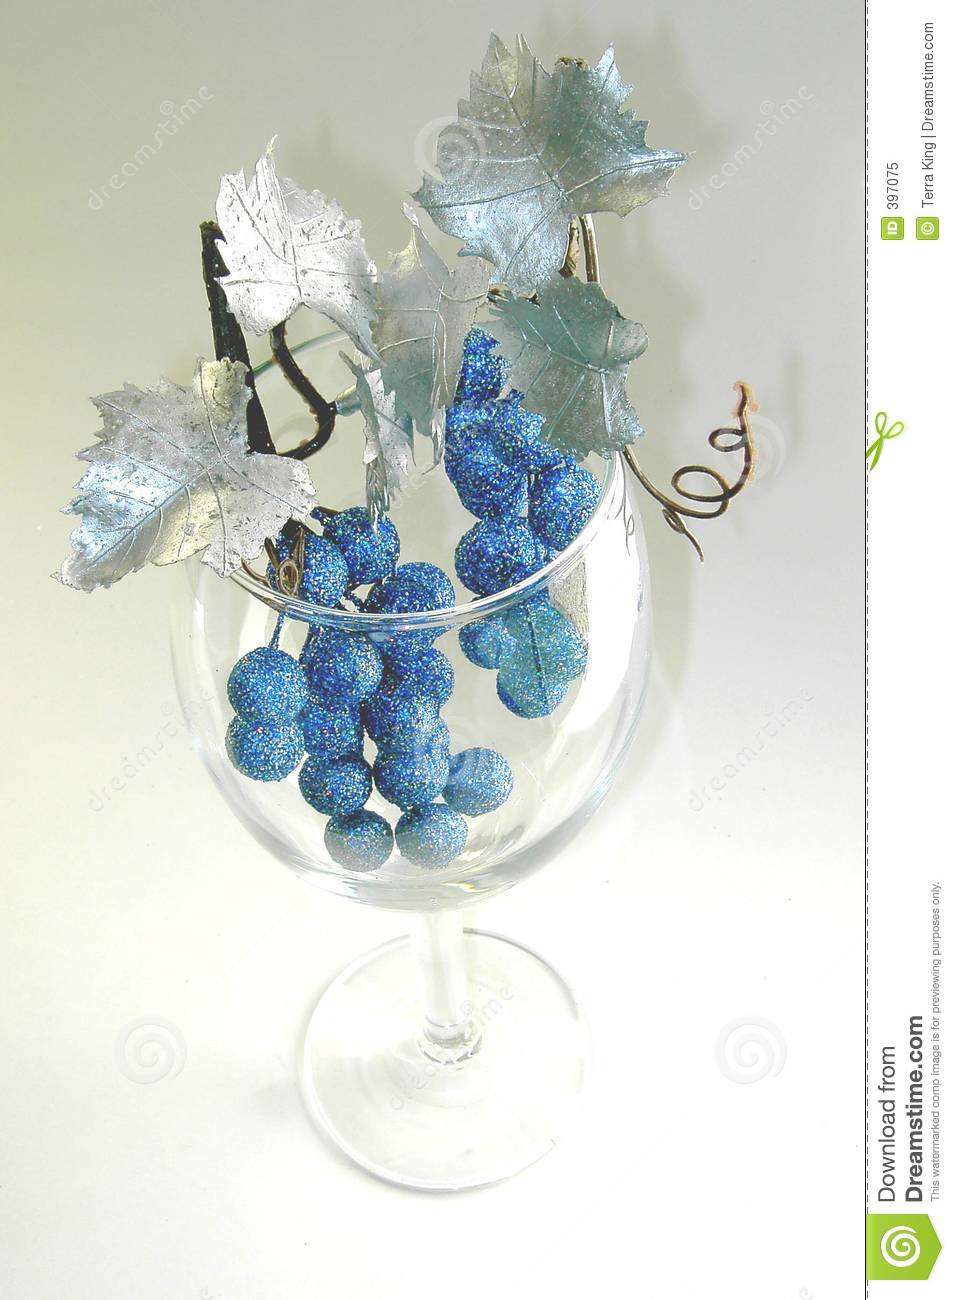 Wine glass with glittery fruit silver leaves